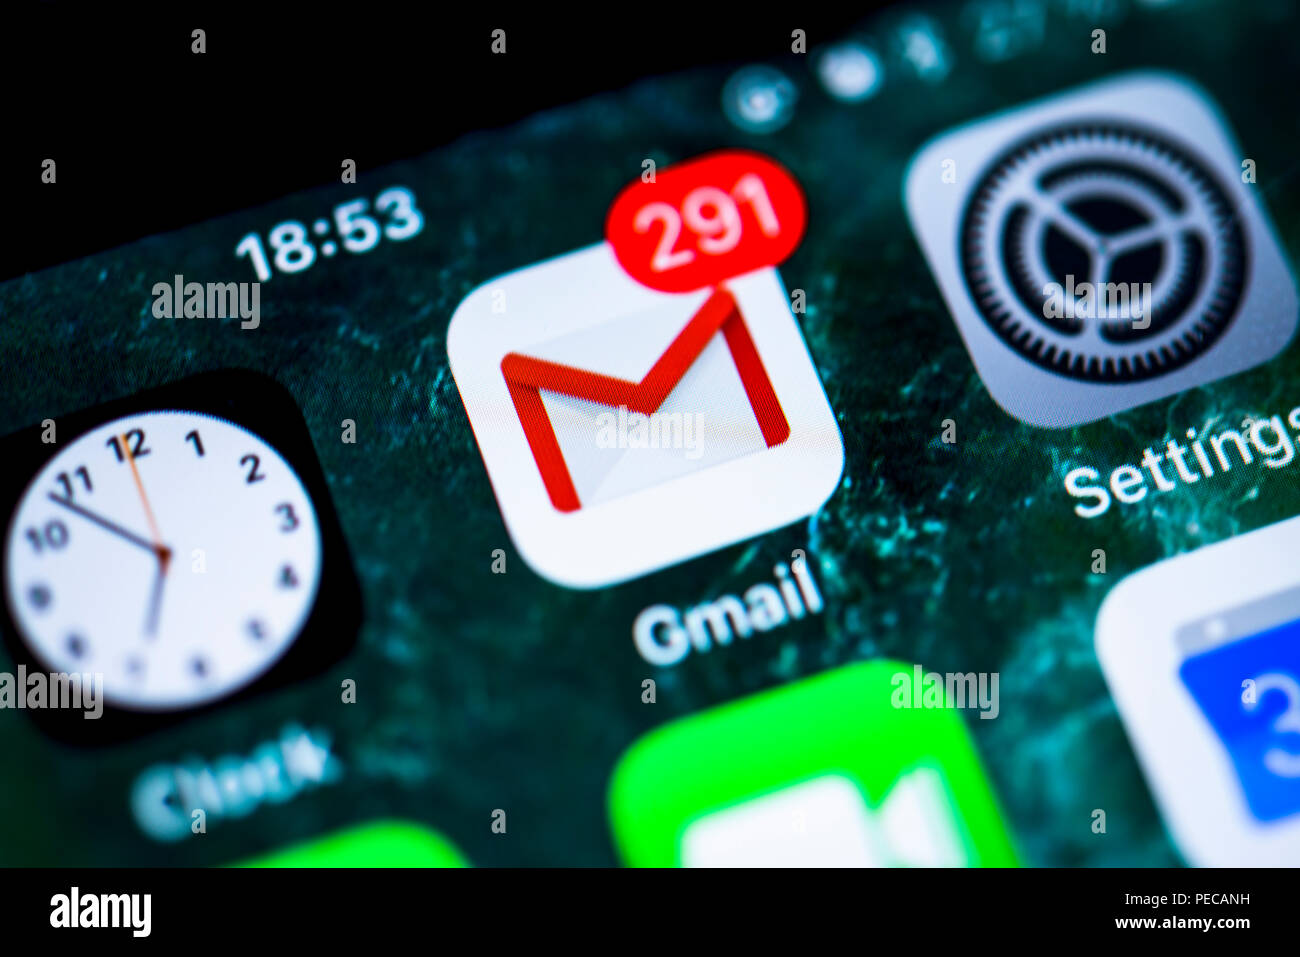 Google Gmail, email service, app icon on iPhone, iOS, smartphone screen, display, close-up, detail, Germany - Stock Image